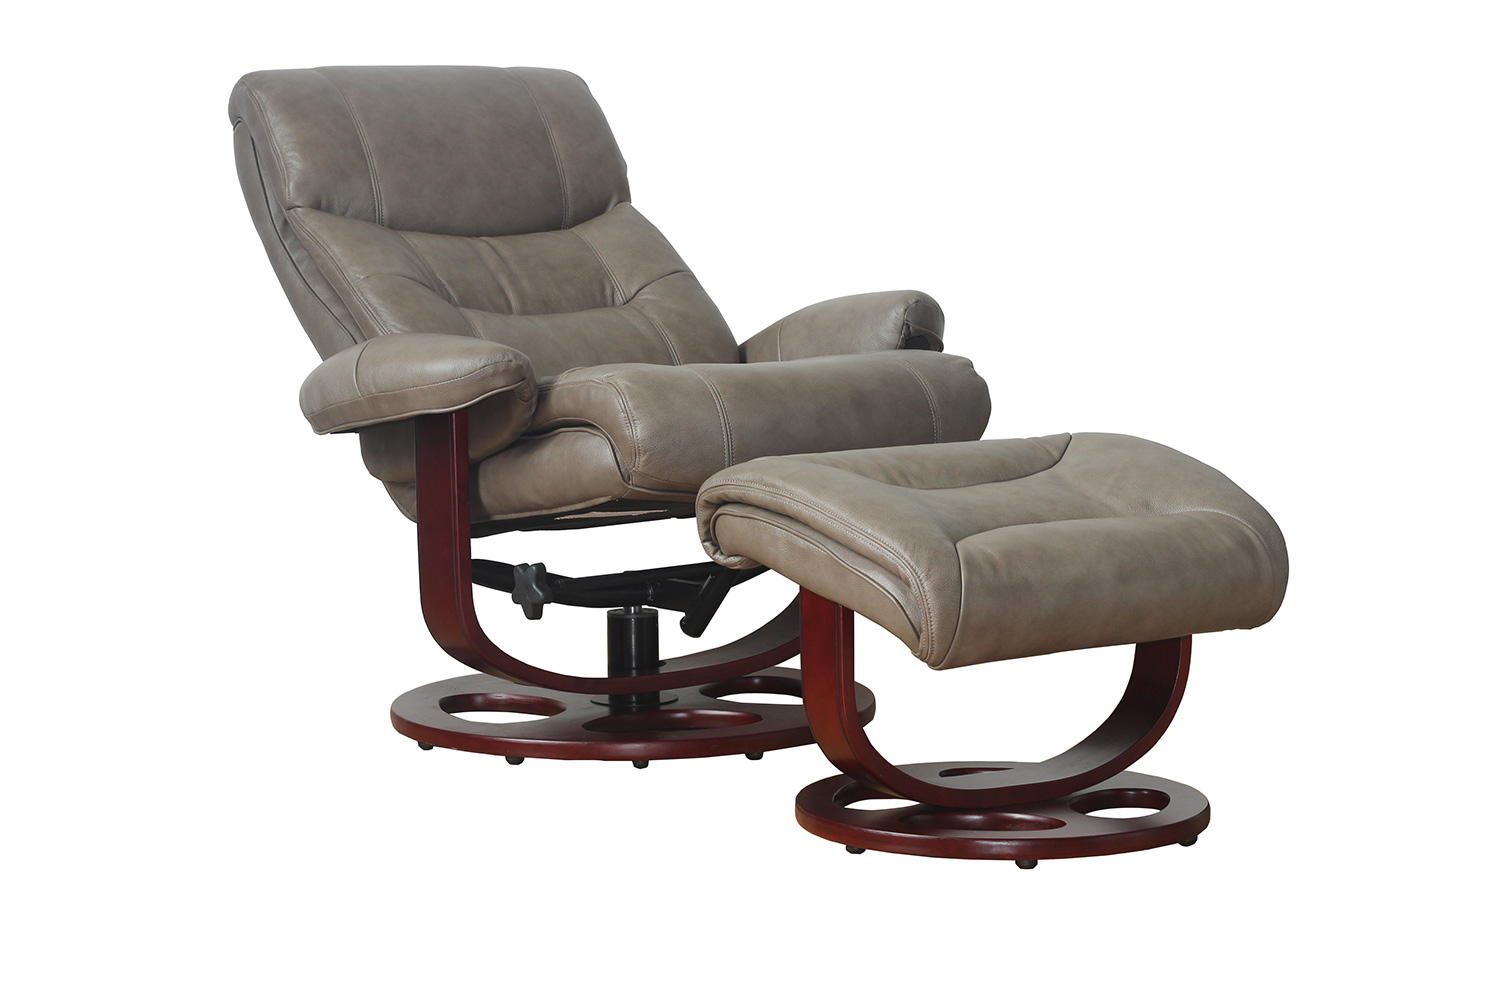 Barcalounger Dawson Pedestal Recliner Chair and Ottoman - Chelsea Cobblestone/Leather Match